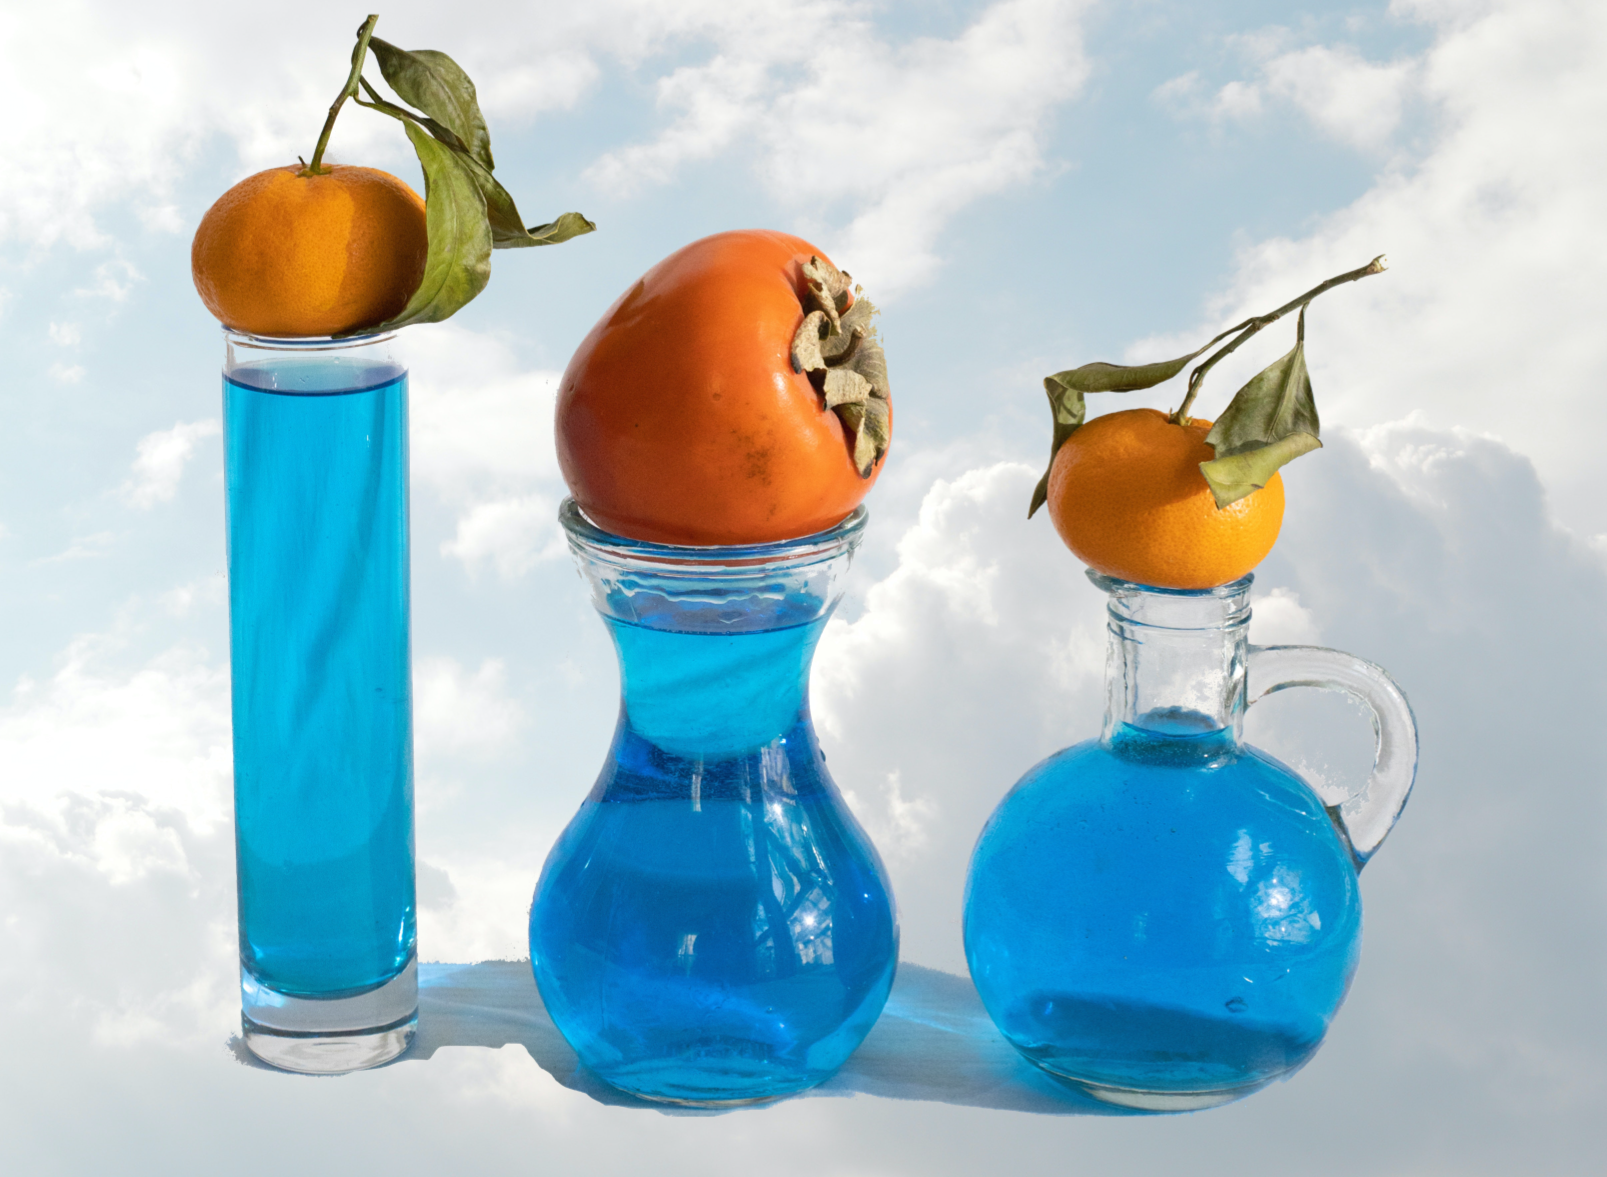 Fantasy Blue beakers and fruits